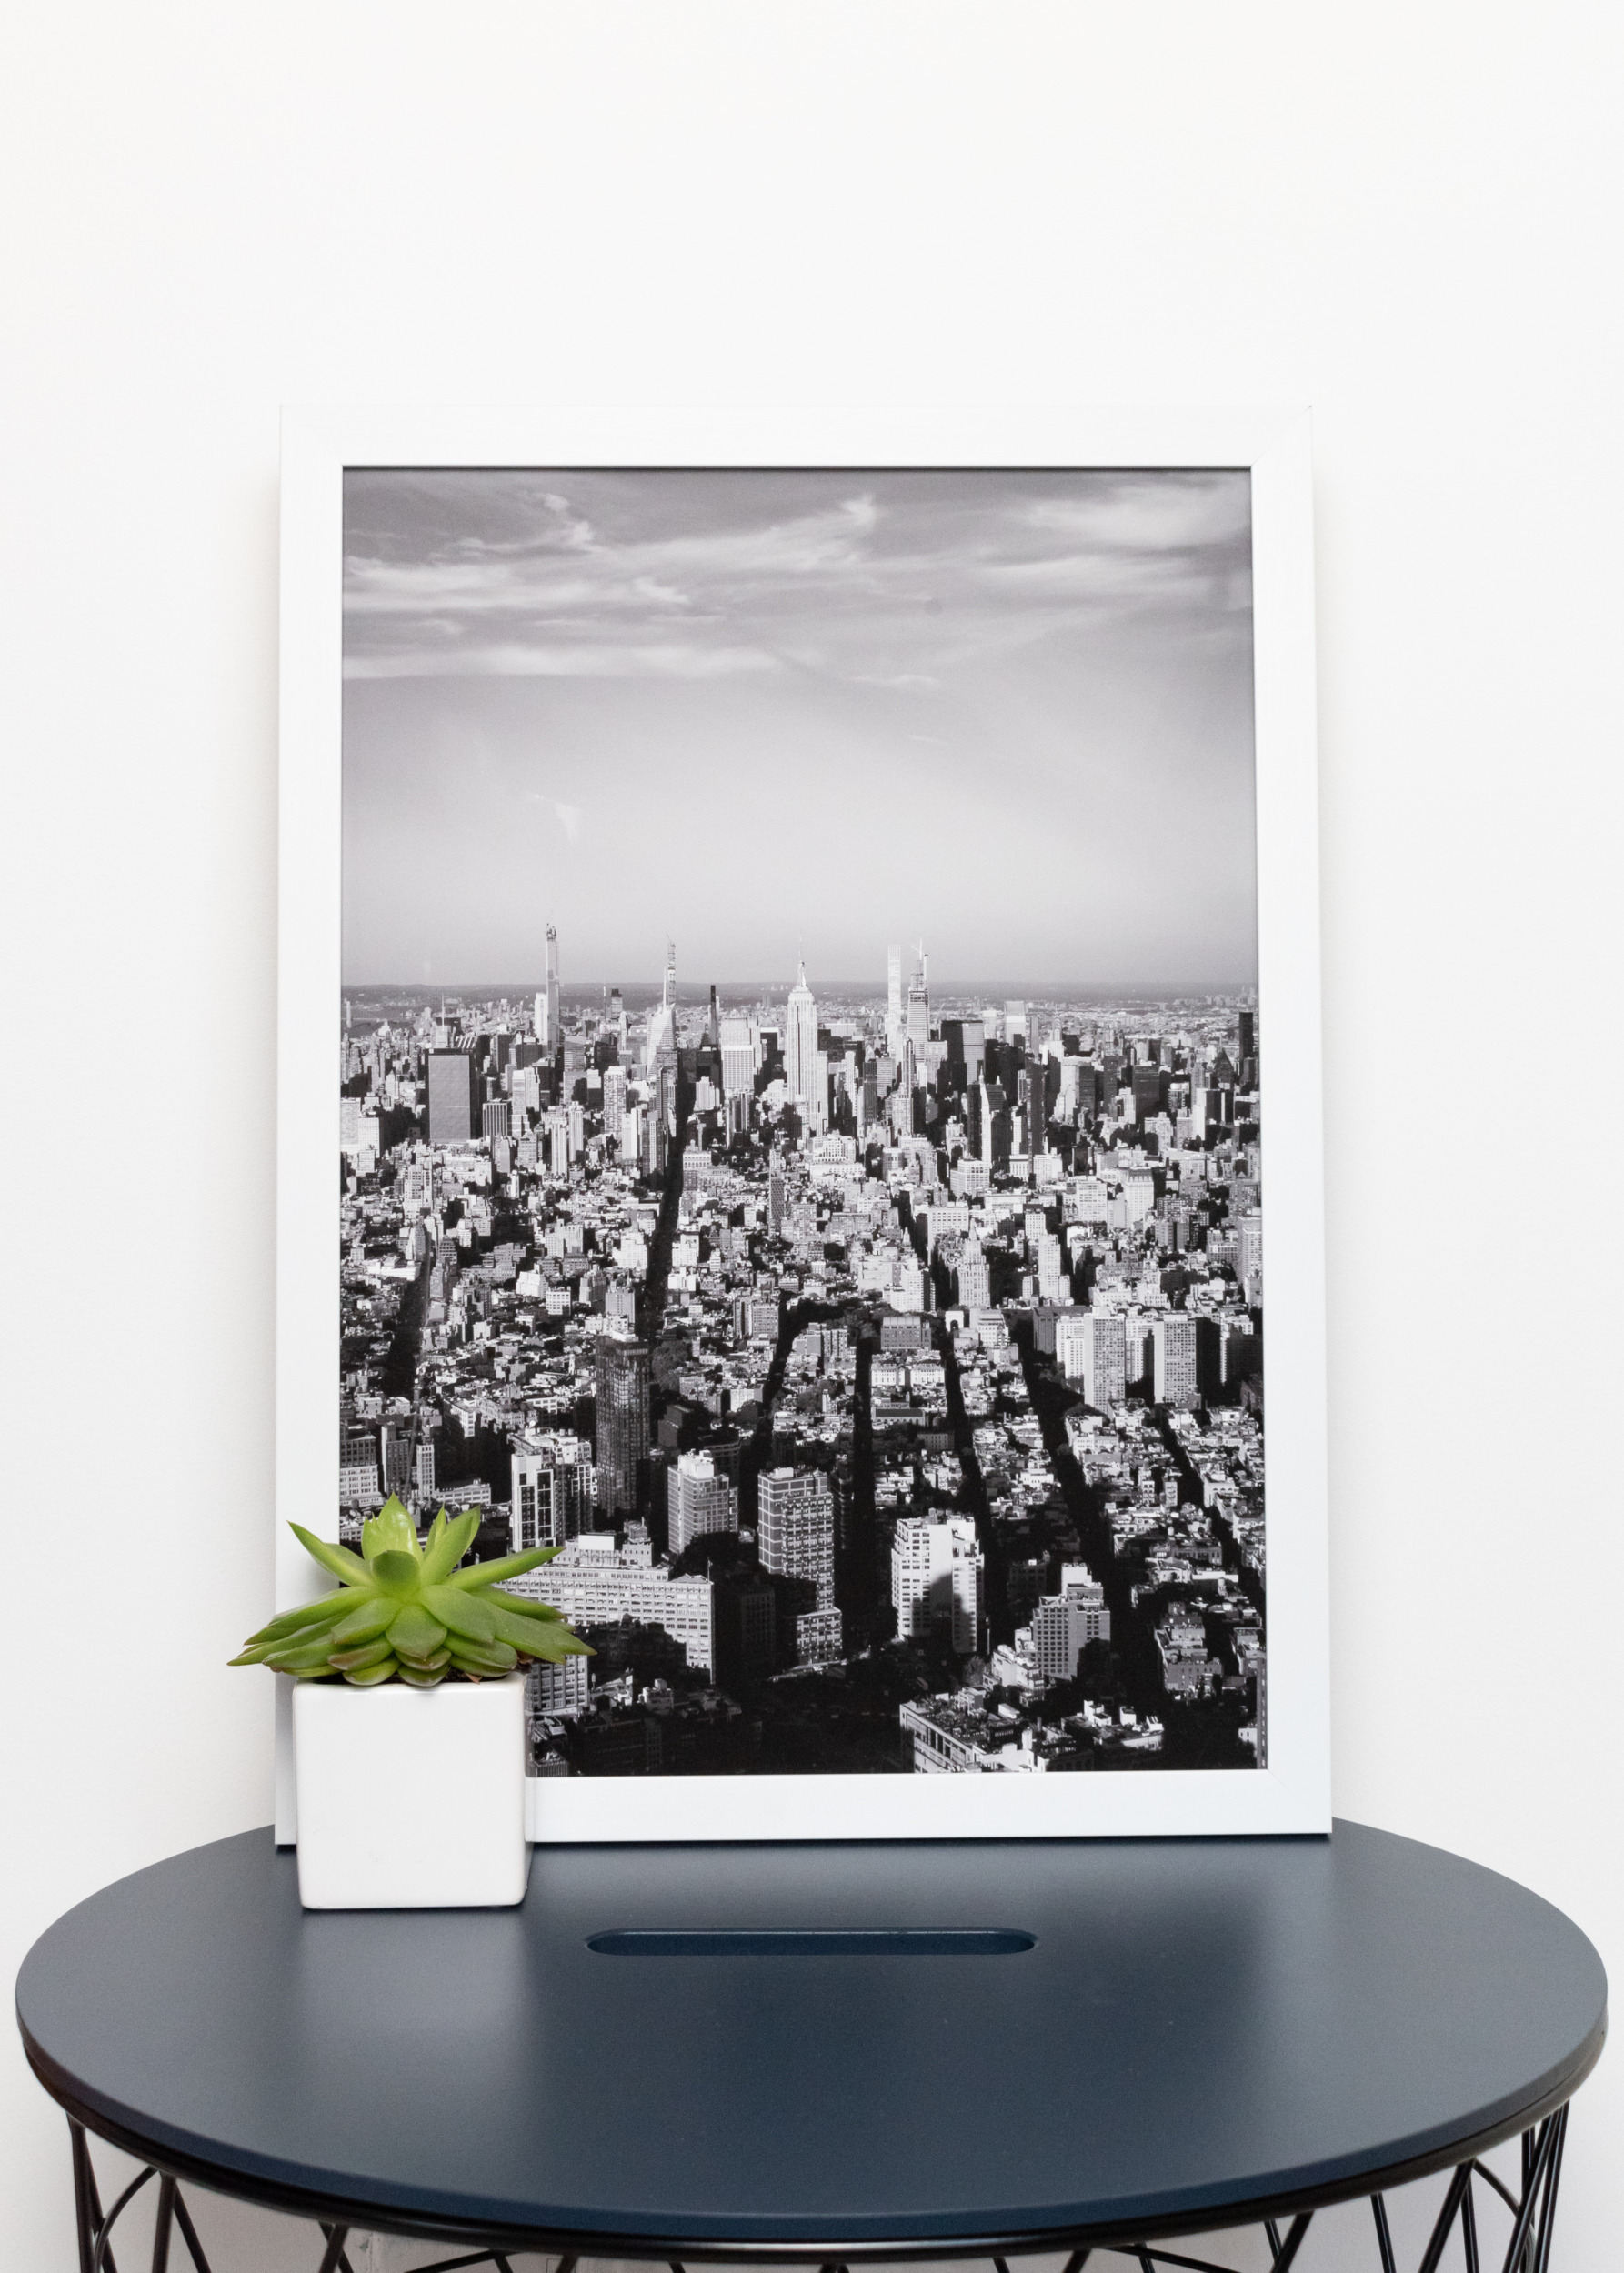 Framed A3 Victoria Broad Photography print of New York skyline, in white frame.